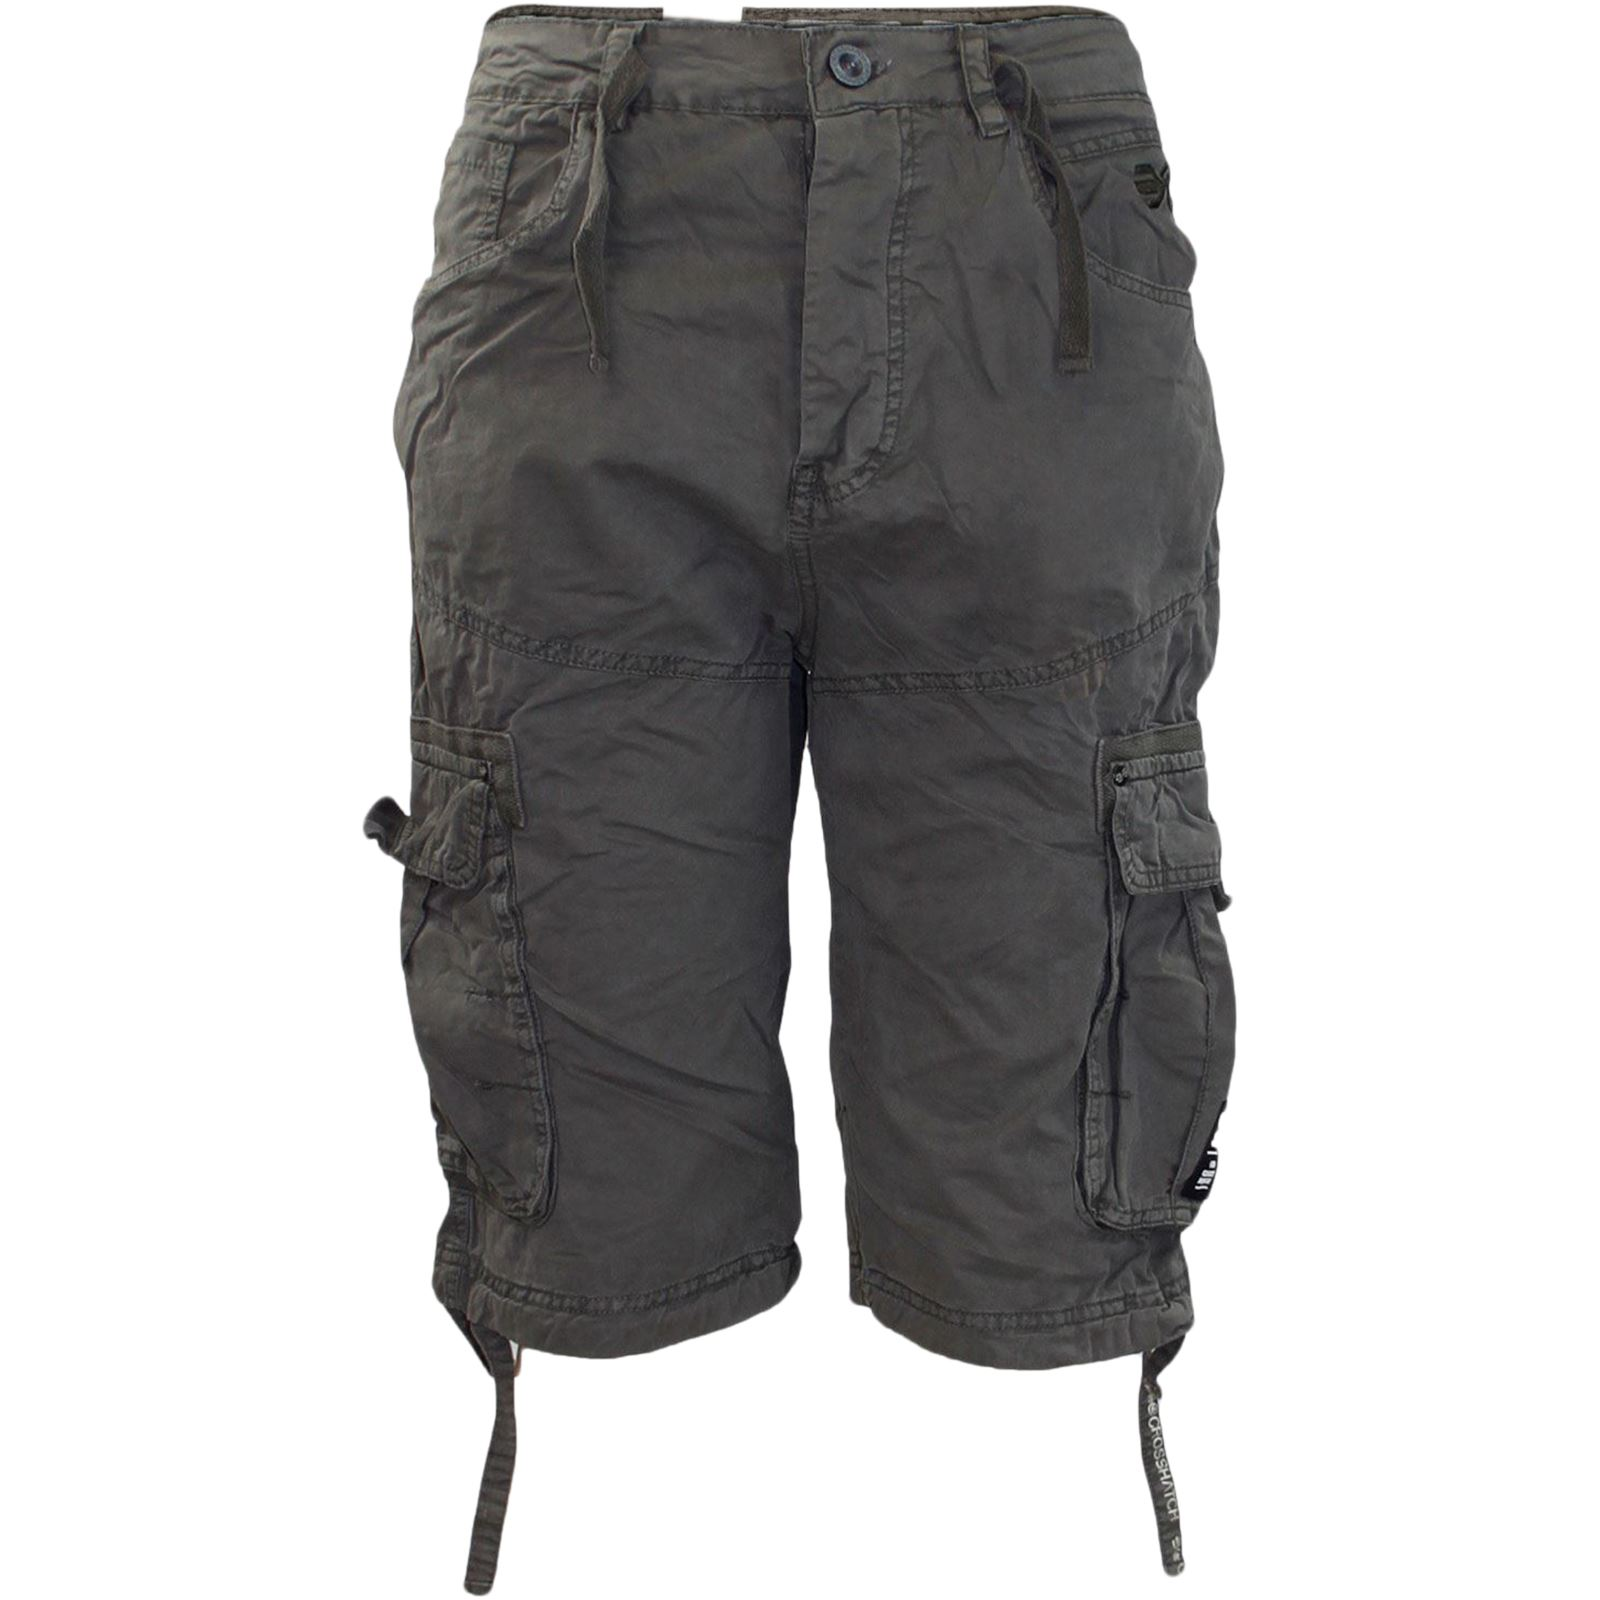 MEN'S DESIGNER SHORTS, CARGO SHORTS, CASUAL SHORTS, DENIM SHORTS, AND SLIM SHORTS. Stay comfortable during warm months in men's designer shorts. High-quality materials keep you cool and relaxed, while sleek lines and contemporary designs make you look smart and put-together.